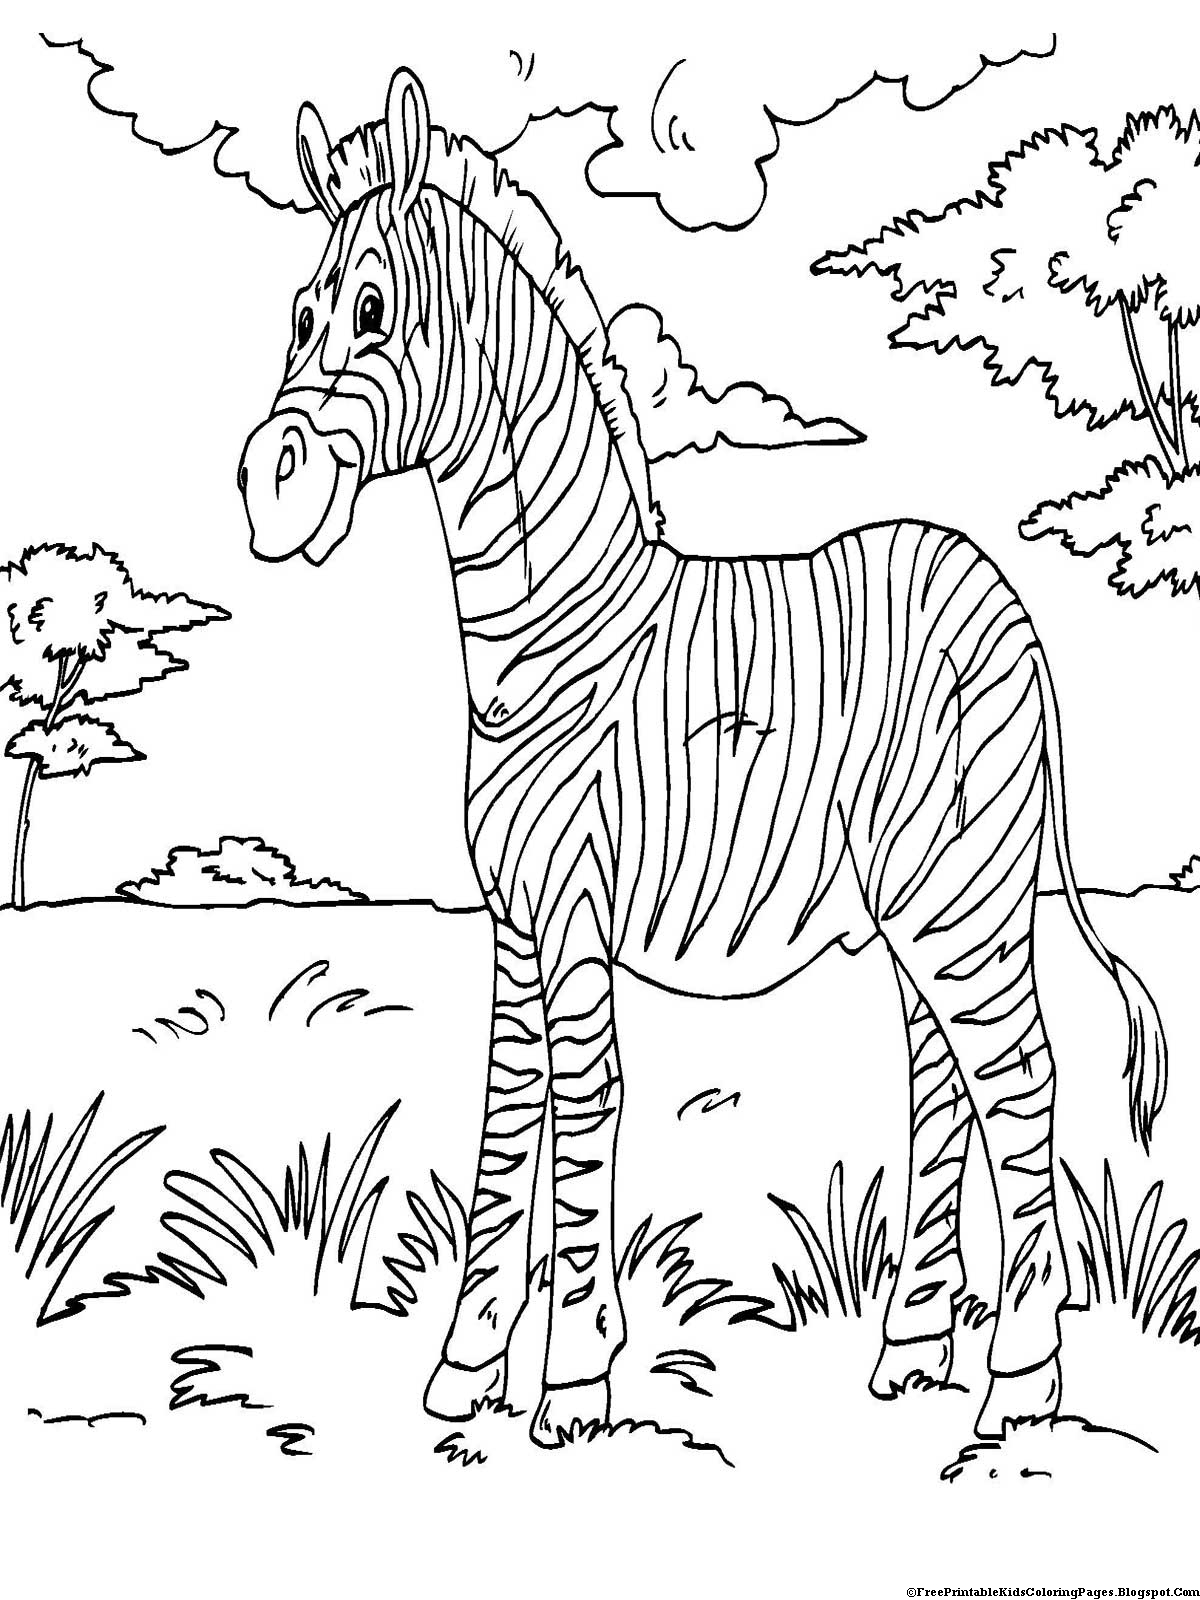 free pictures to print free printable zebra coloring pages for kids to print free pictures